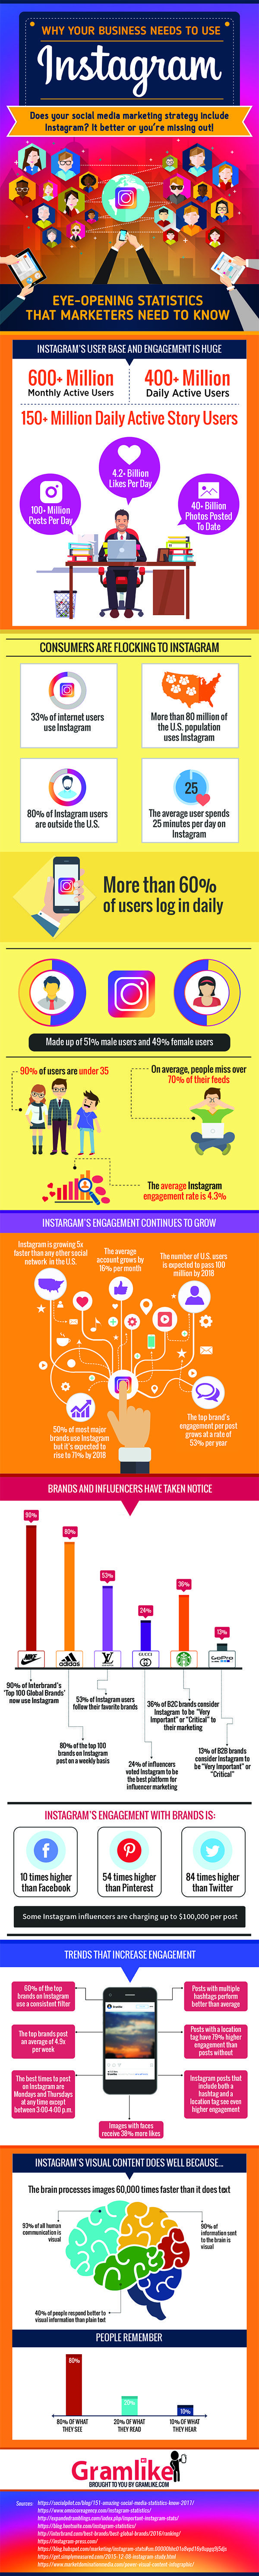 Why Your Business Needs to consider Instagram Marketing